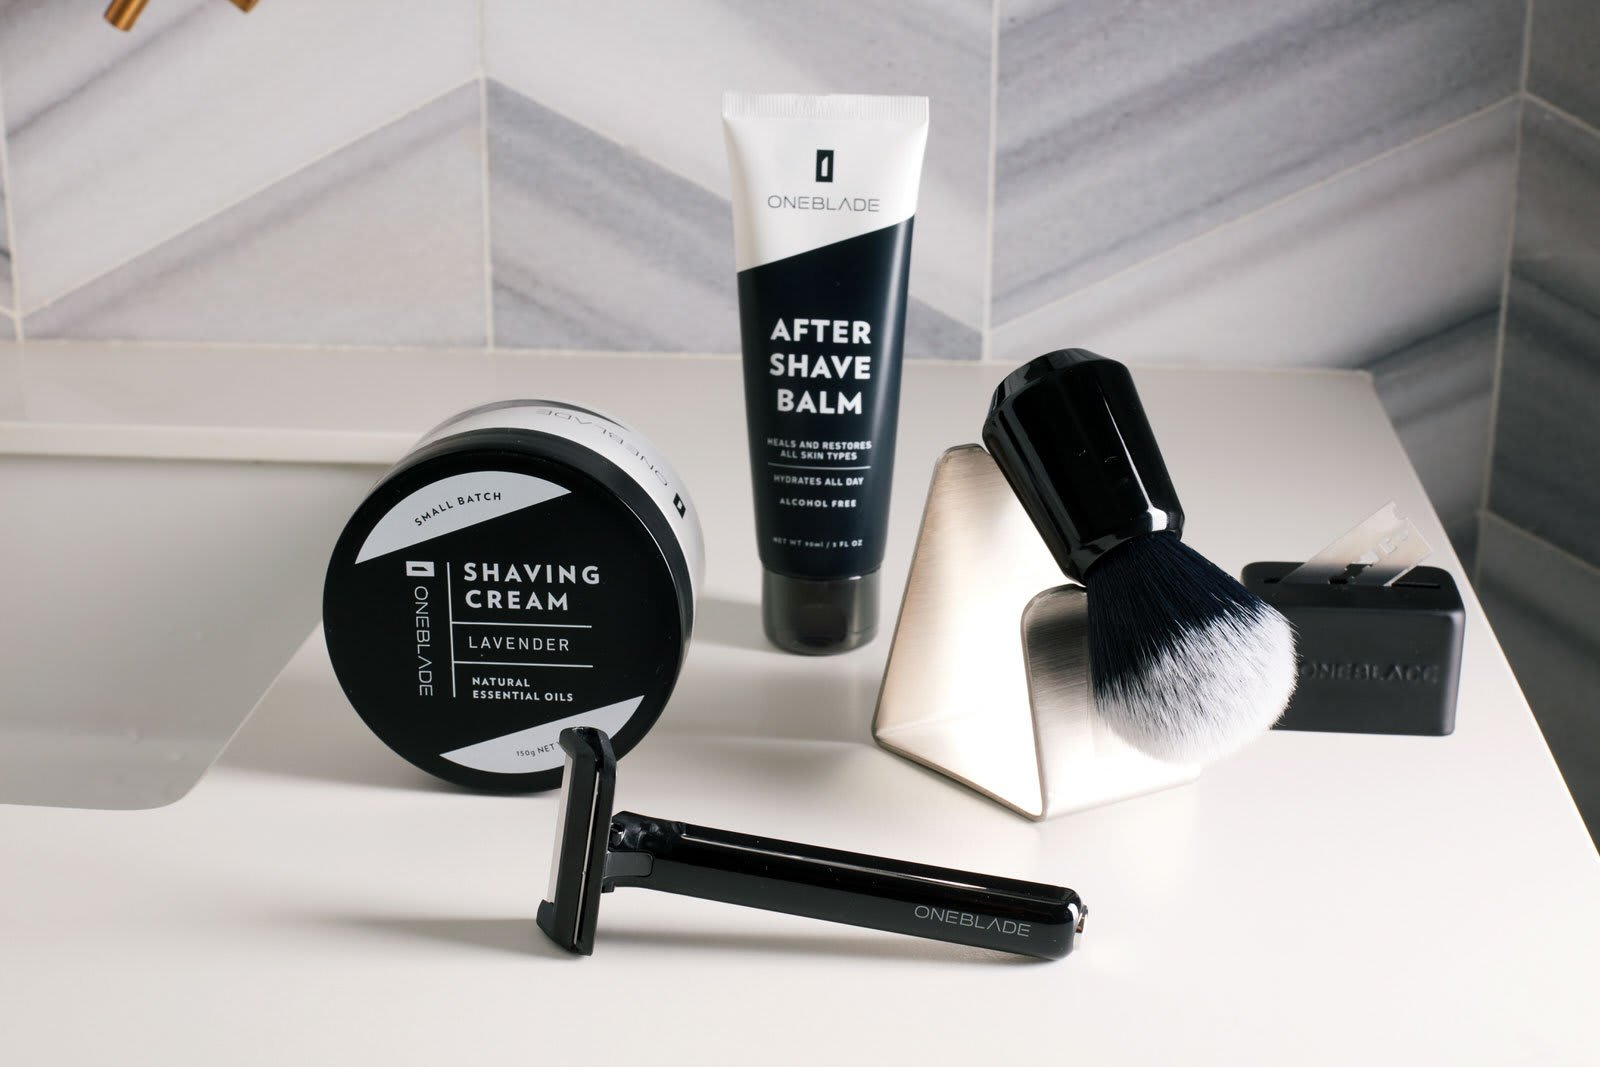 OneBlade Shave Kit, including shaving cream, after shave balm, a shaving brush with stand, a blade disposal box, and a OneBlade razor, all sitting on a countertop.